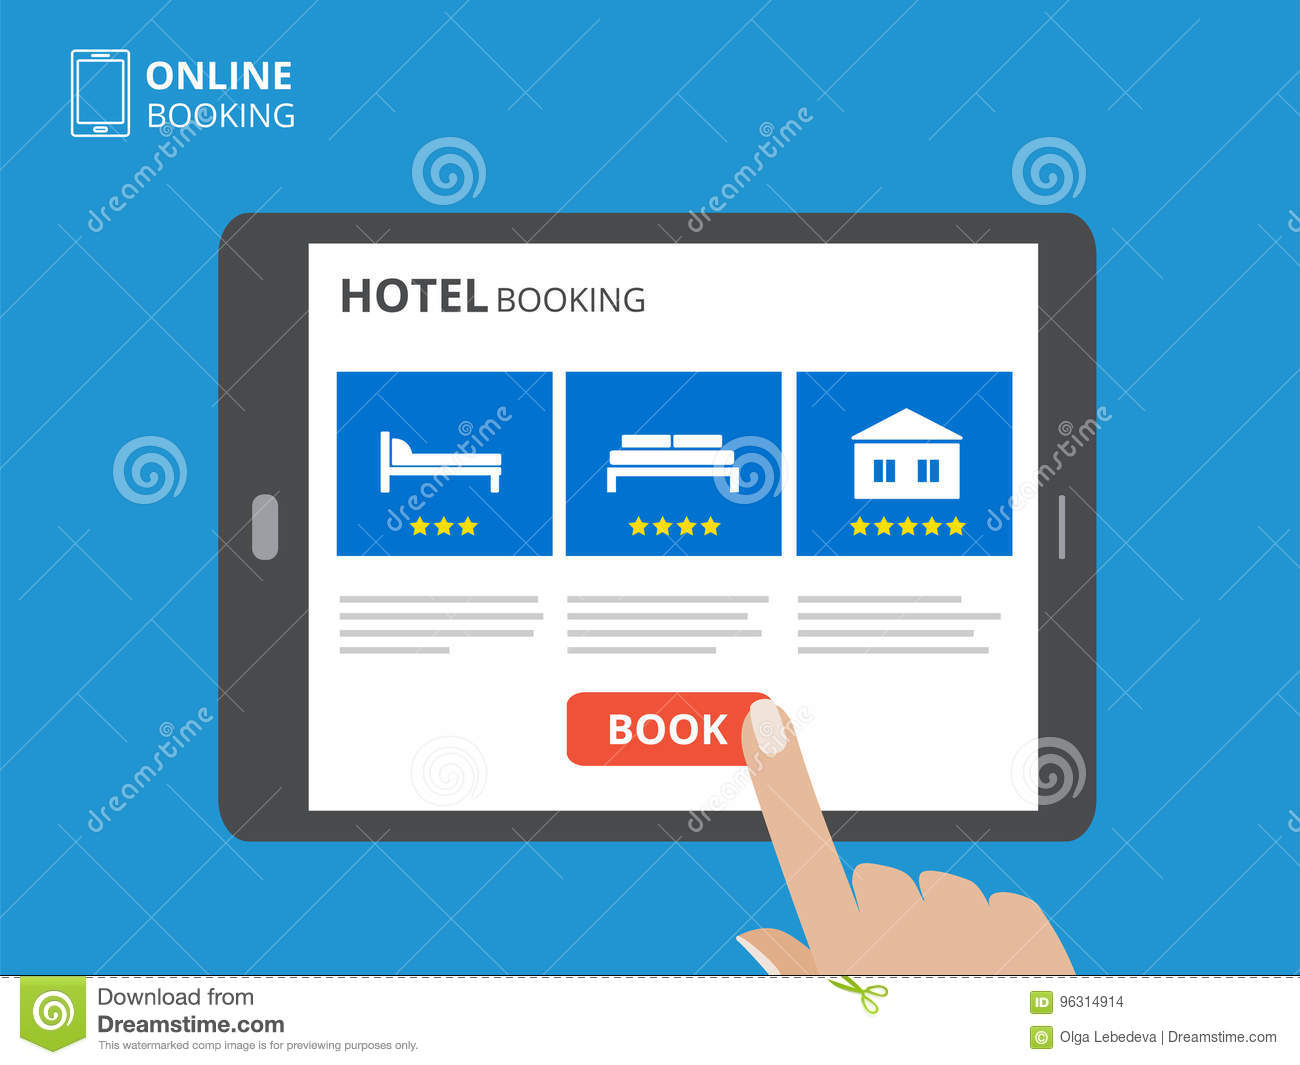 Design concept of hotel booking online. Tablet computer with hand touching a screen. Display